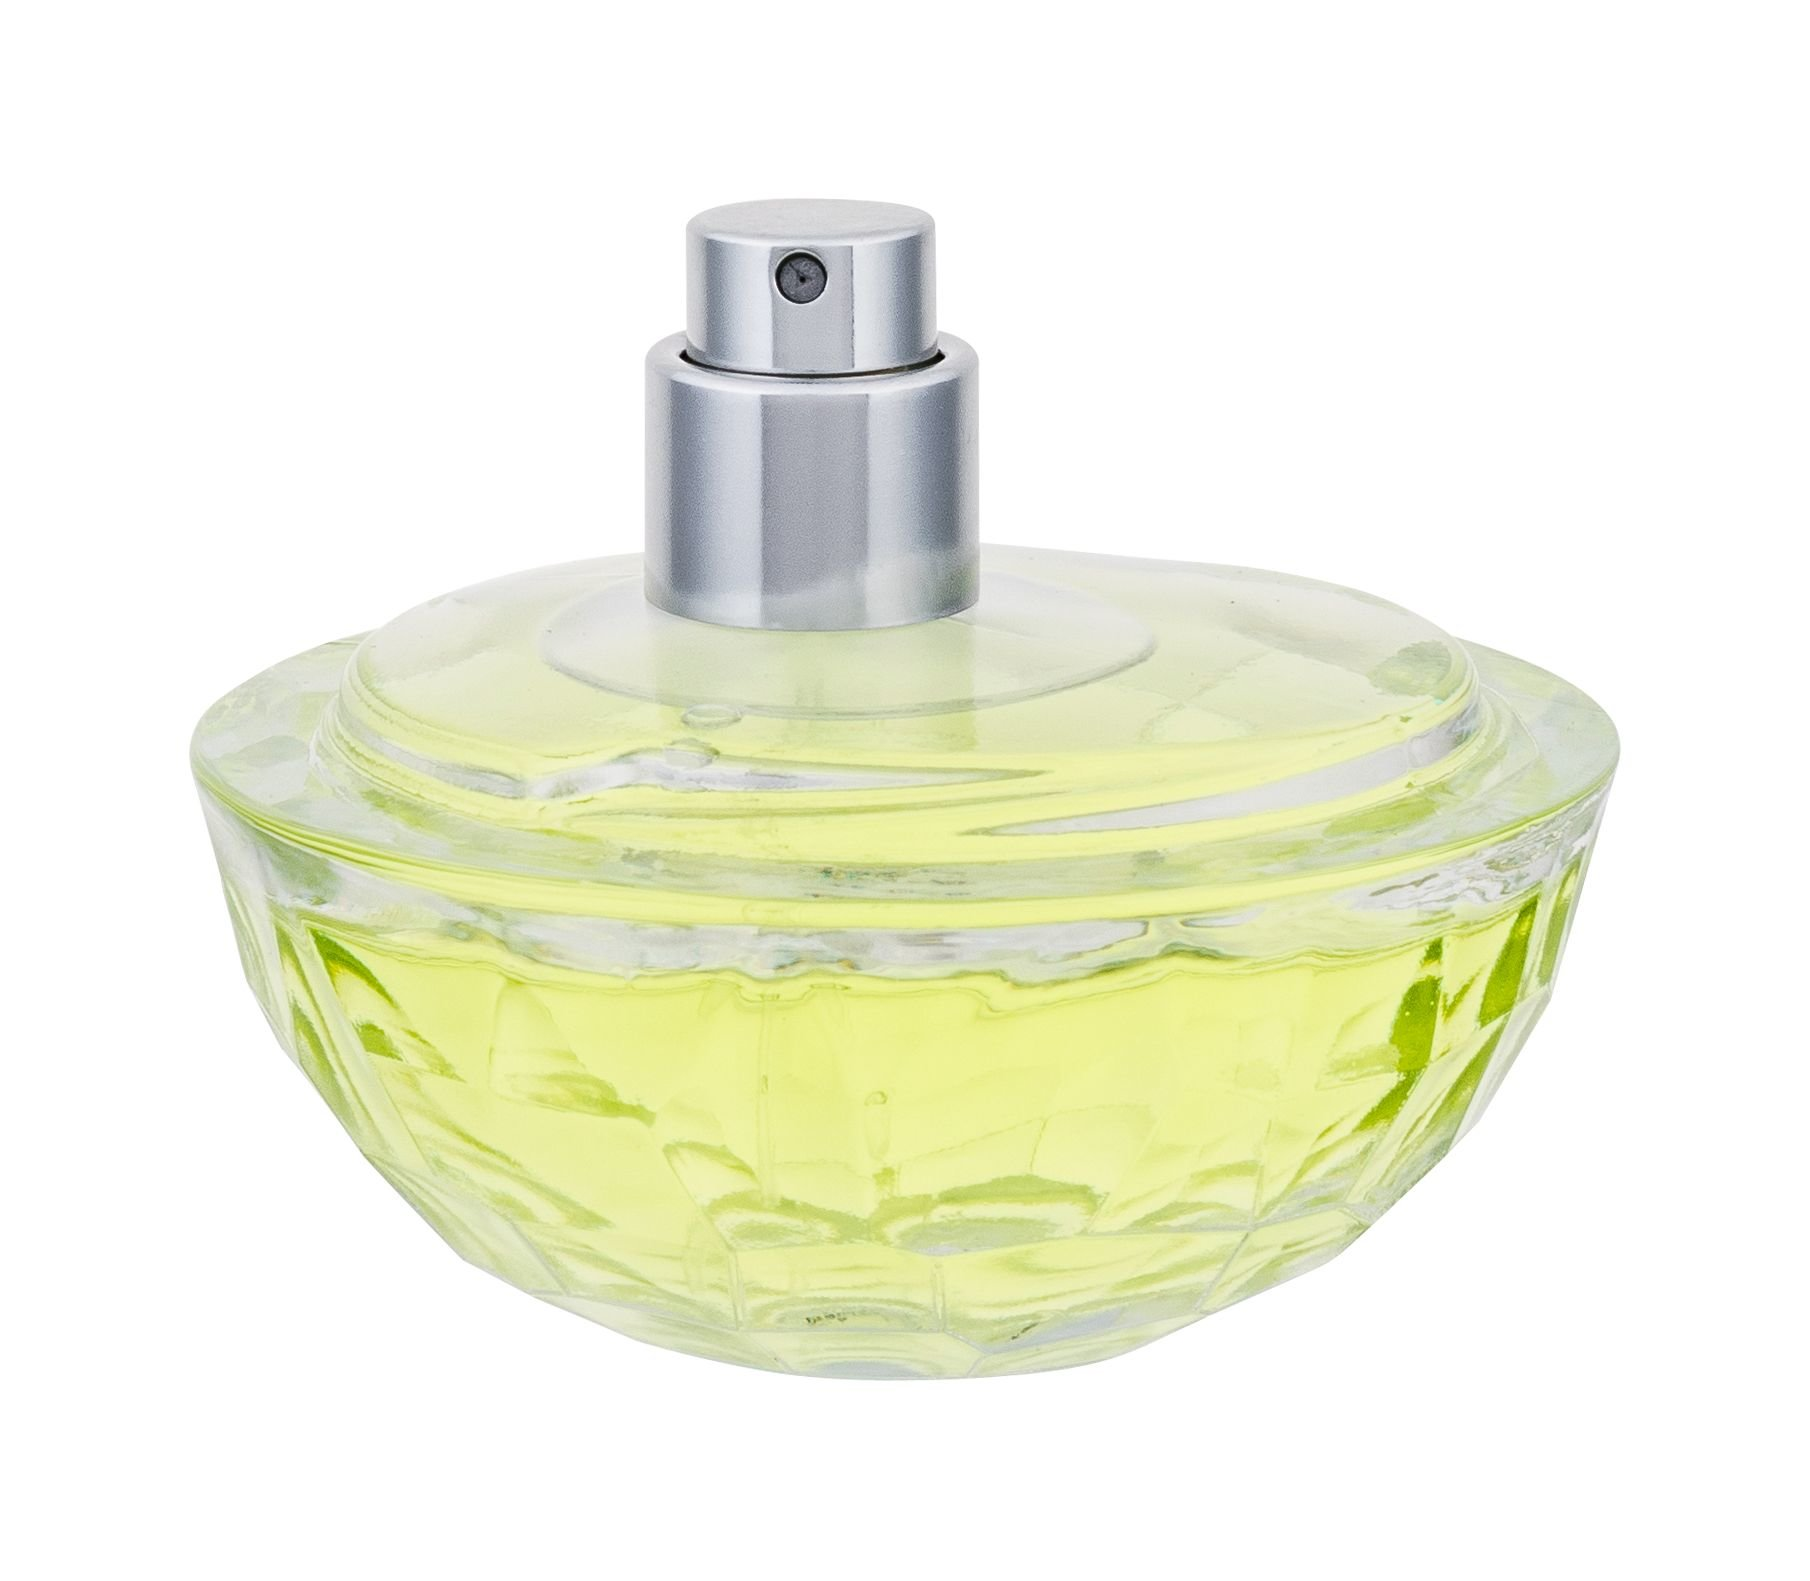 DKNY DKNY Be Delicious Eau de Parfum 50ml